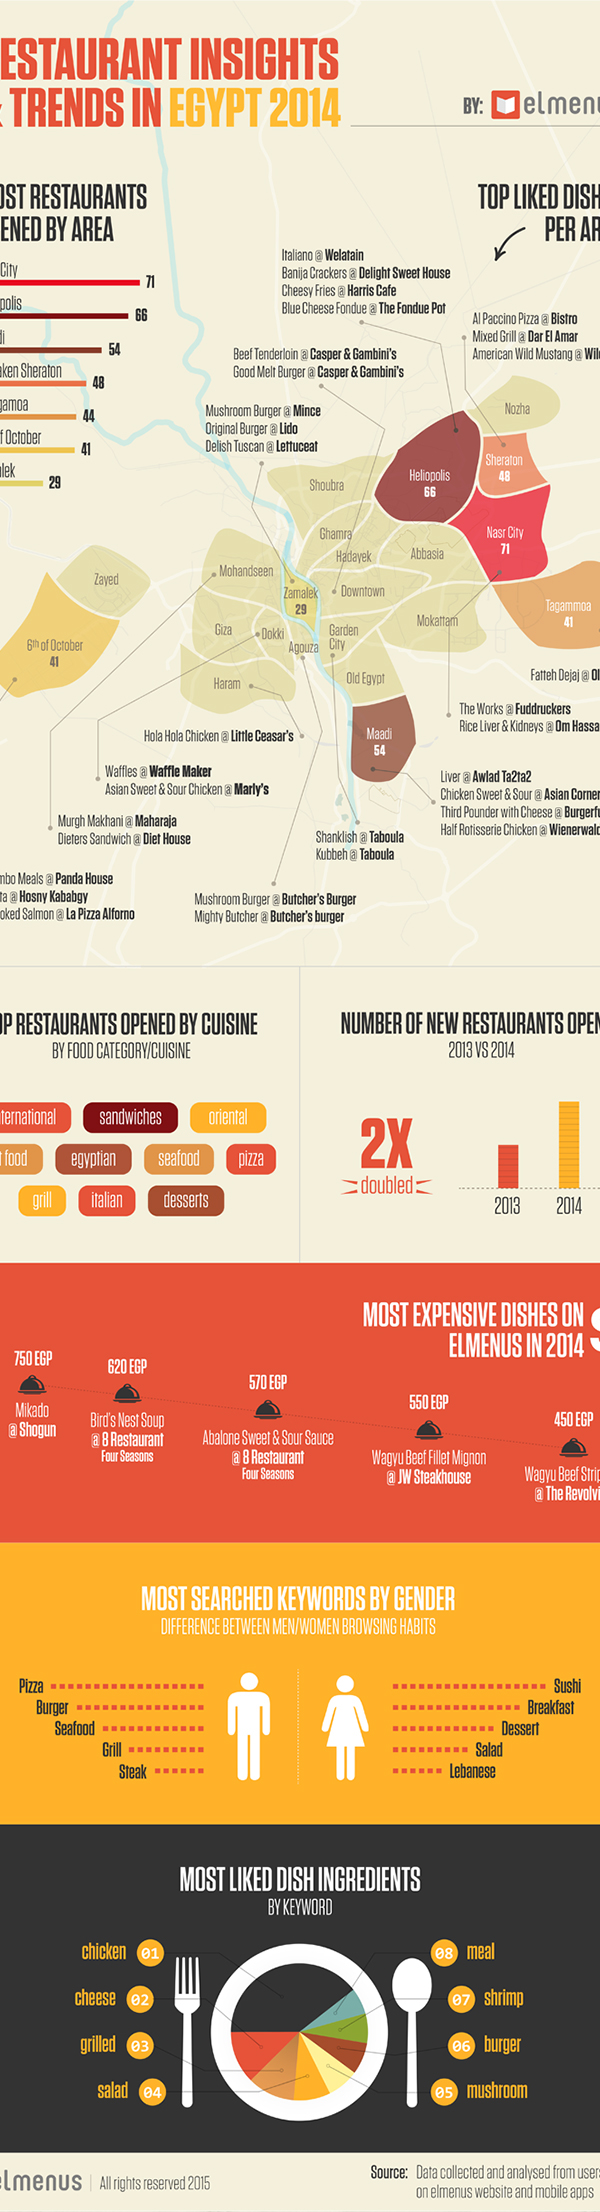 Restaurant insights trends in egypt on pantone